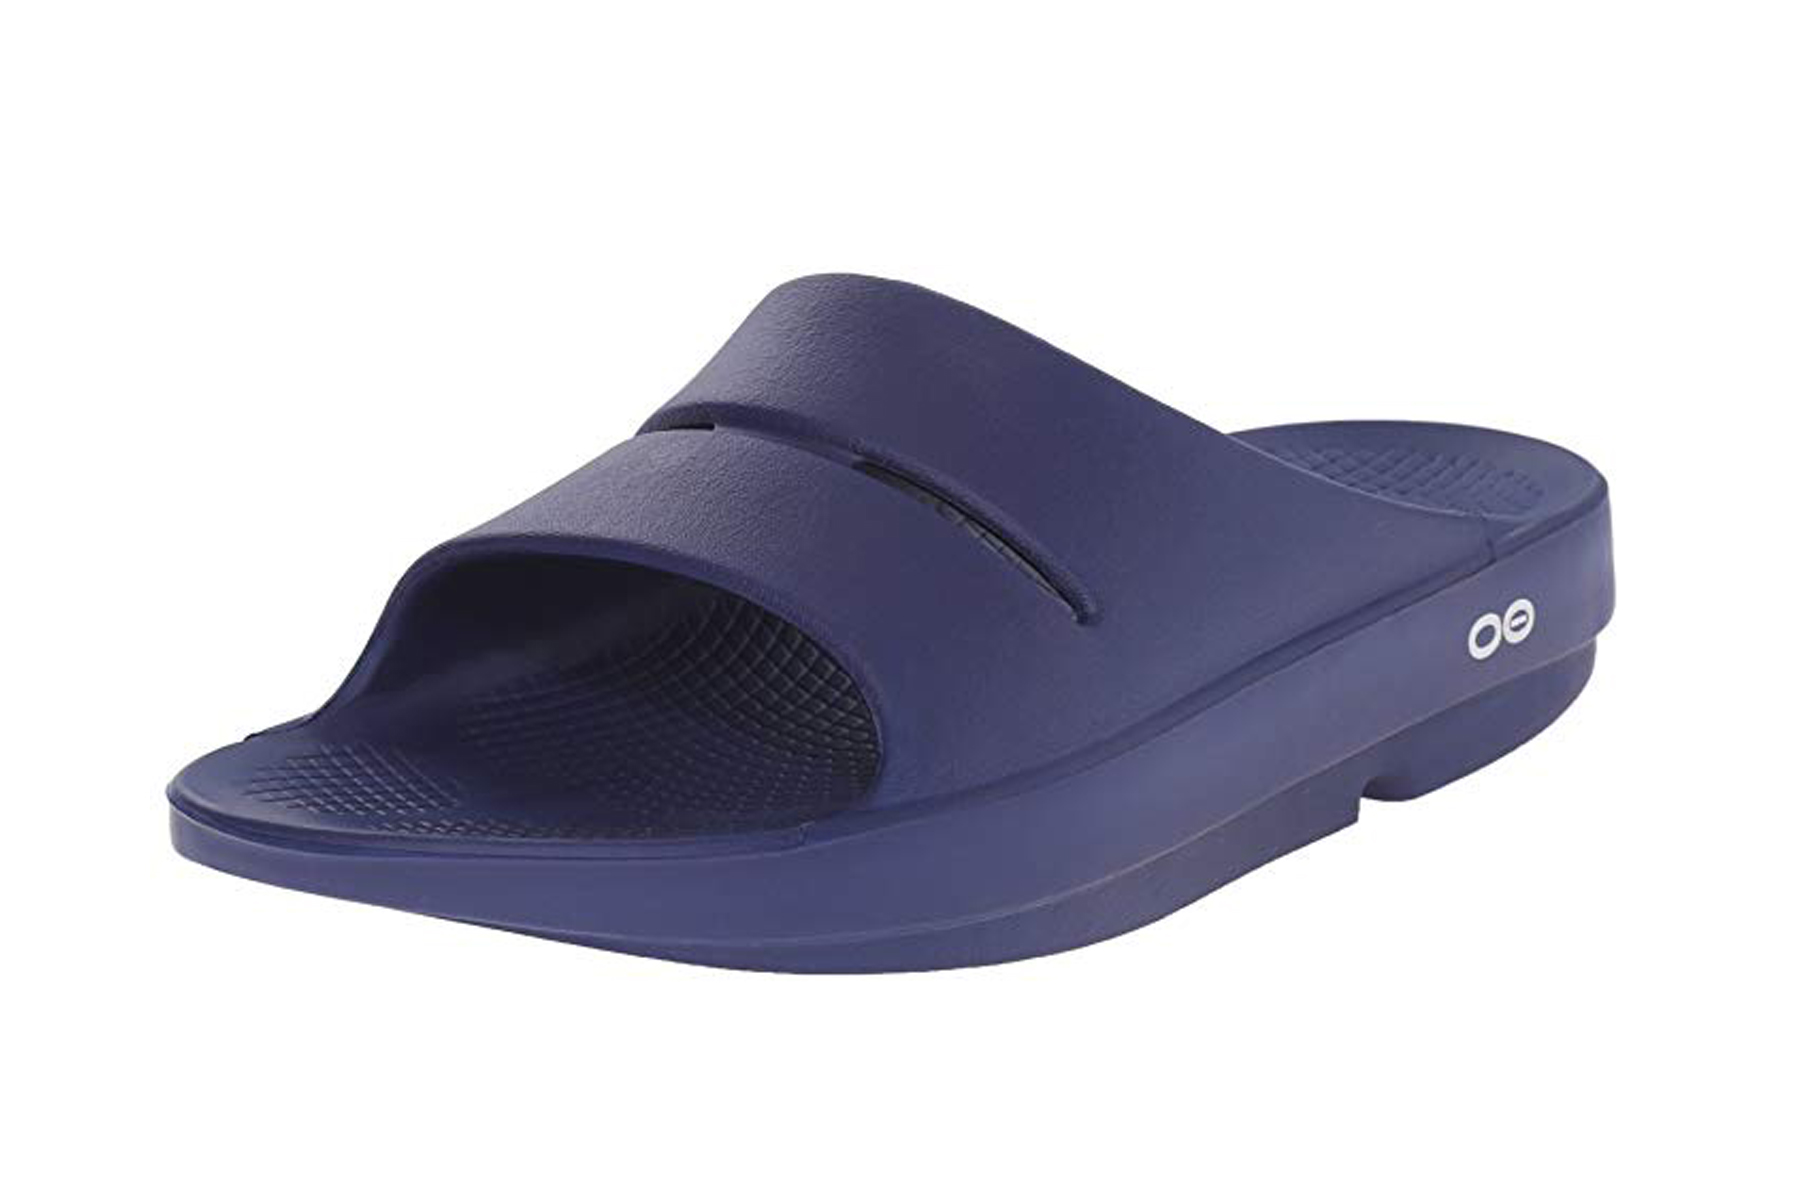 8 Best Orthotic Sandals for Women Over